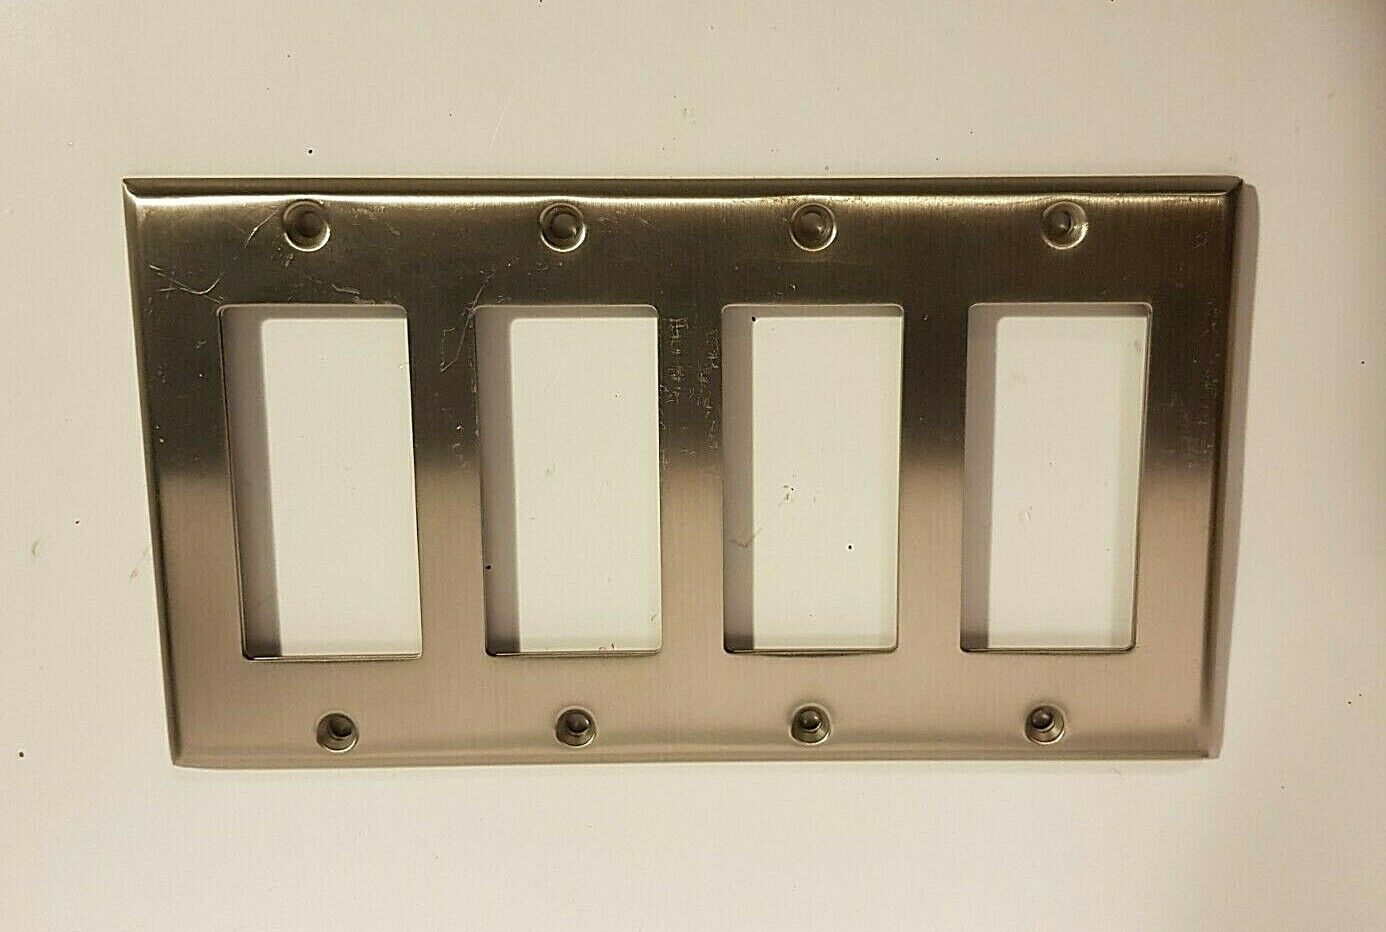 Wall Light Switch Plate Rocker Toggle Cover Brushed Nickel 4 Gang Ebay